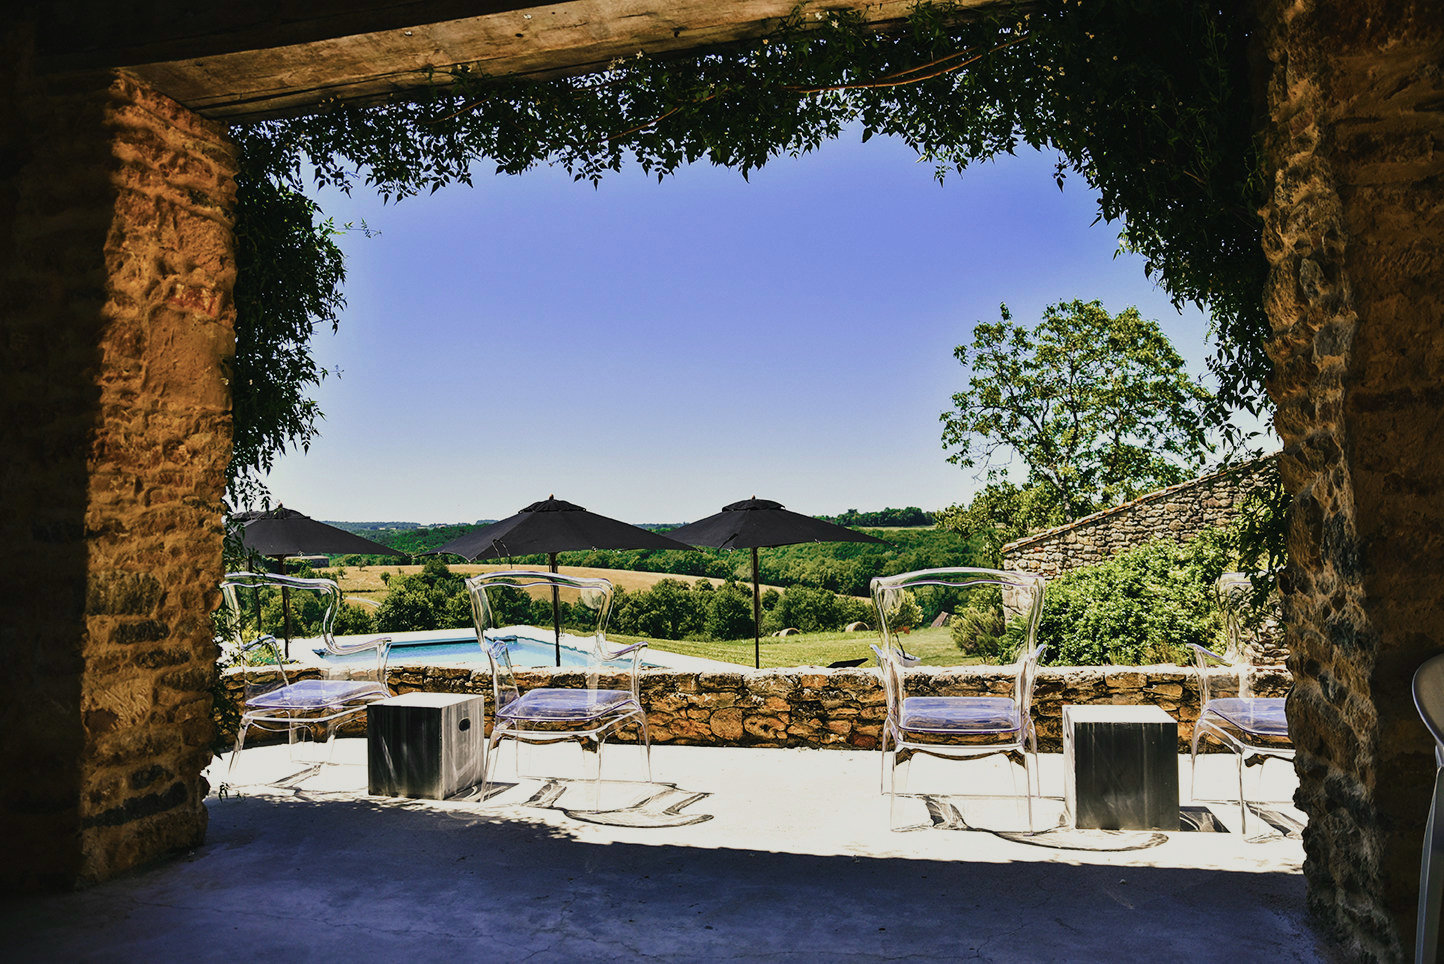 Luxury holiday accommodation in the Dordogne with a sun terrace with Pedrali chairs overlooking the countryside, framed by jasmine